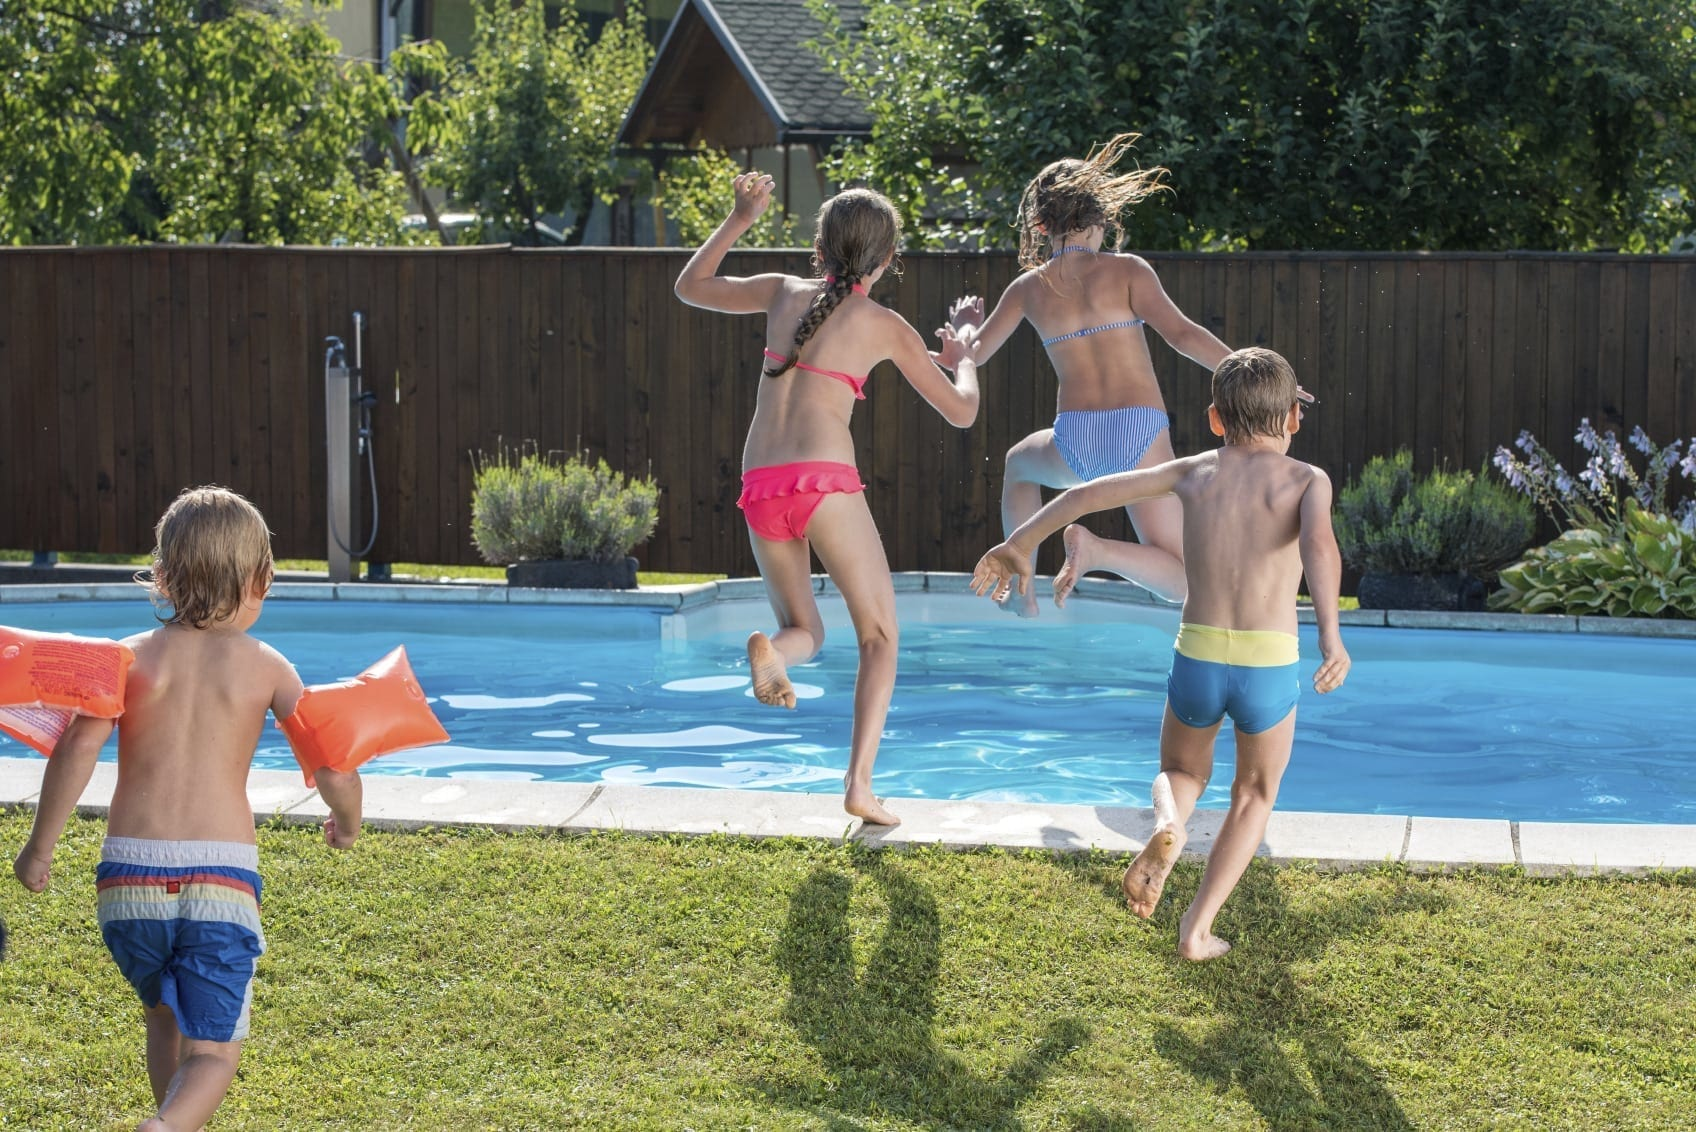 Pool Accident Stock Photo